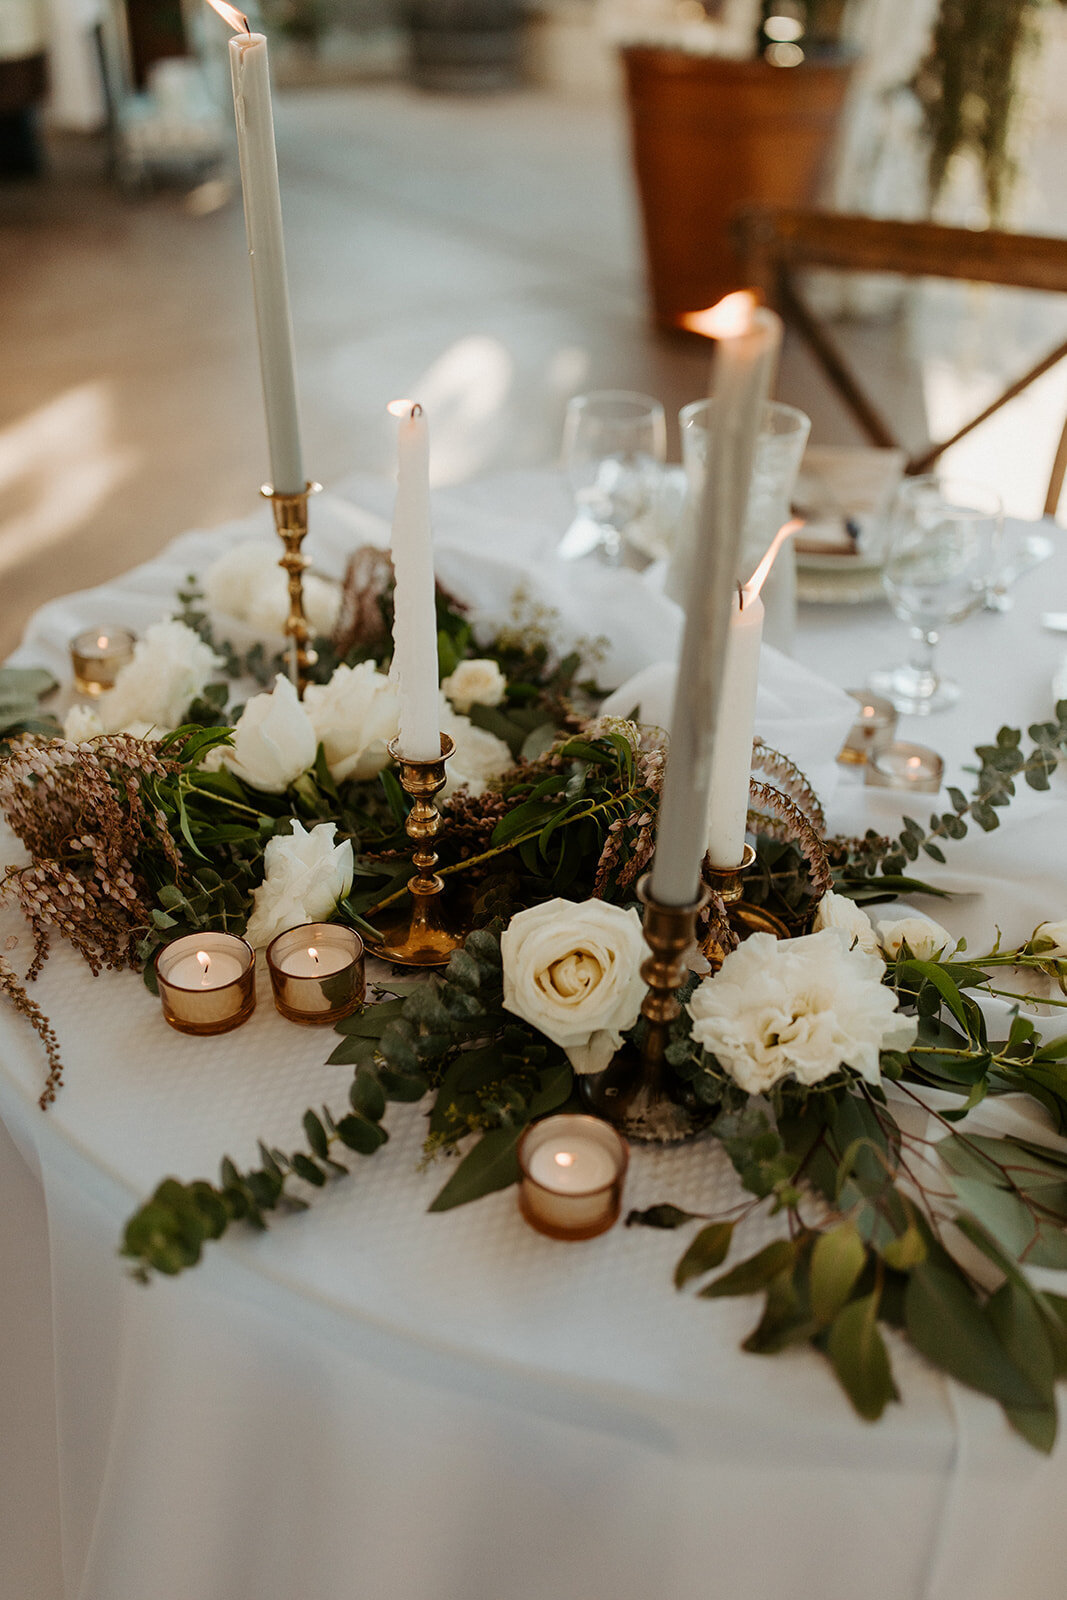 head table decorated with flowers